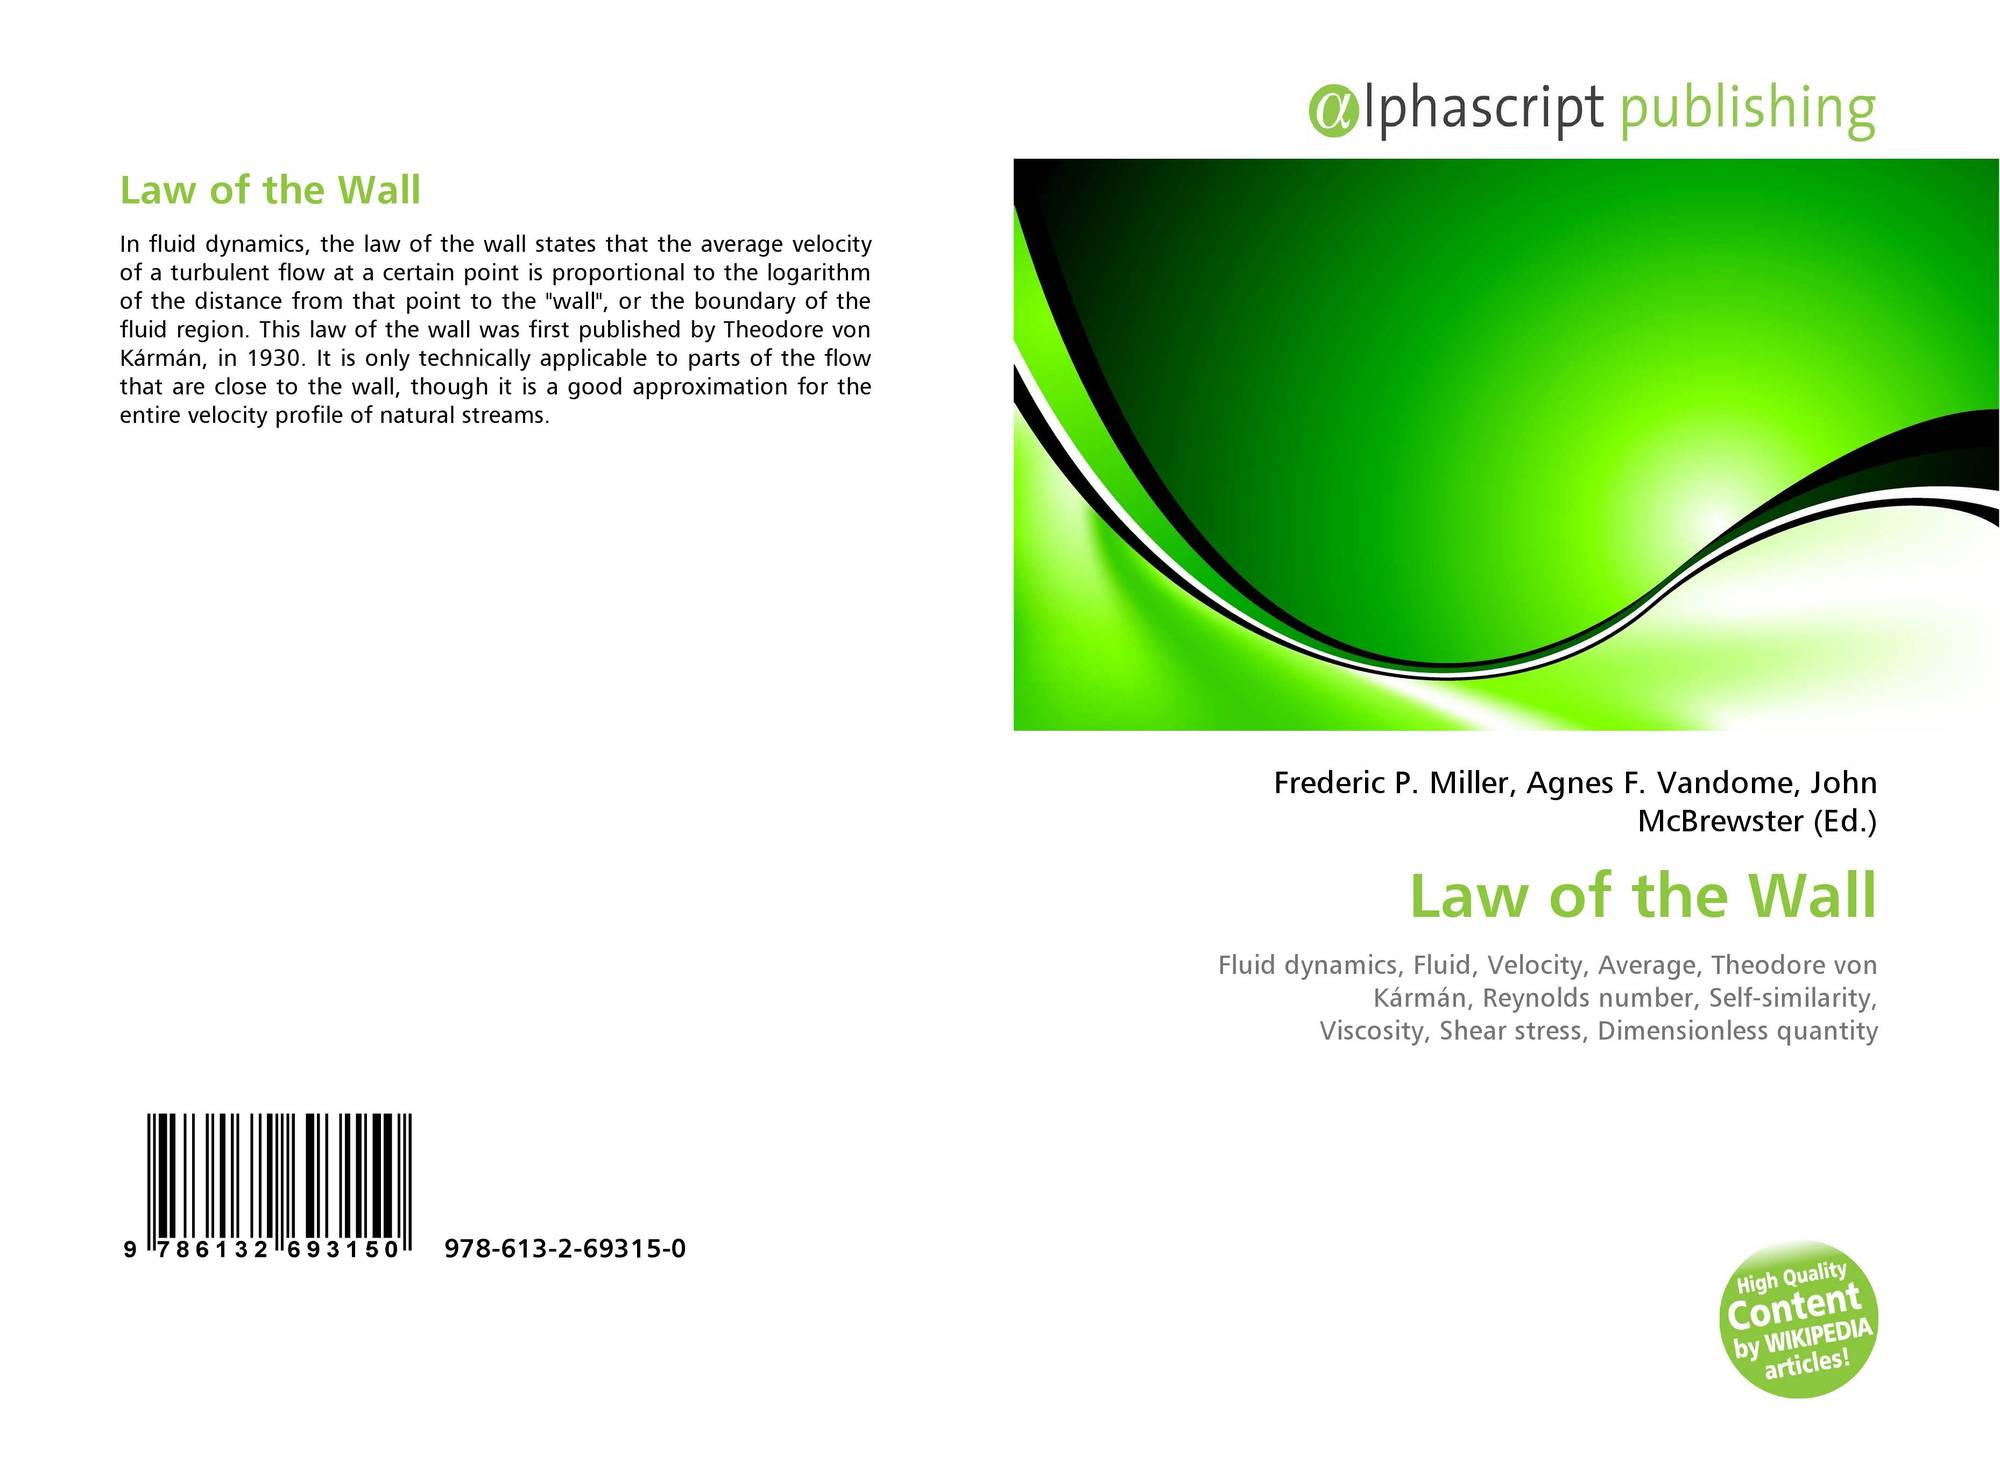 Law of the Wall, 978-613-2-69315-0, 6132693157 ,9786132693150